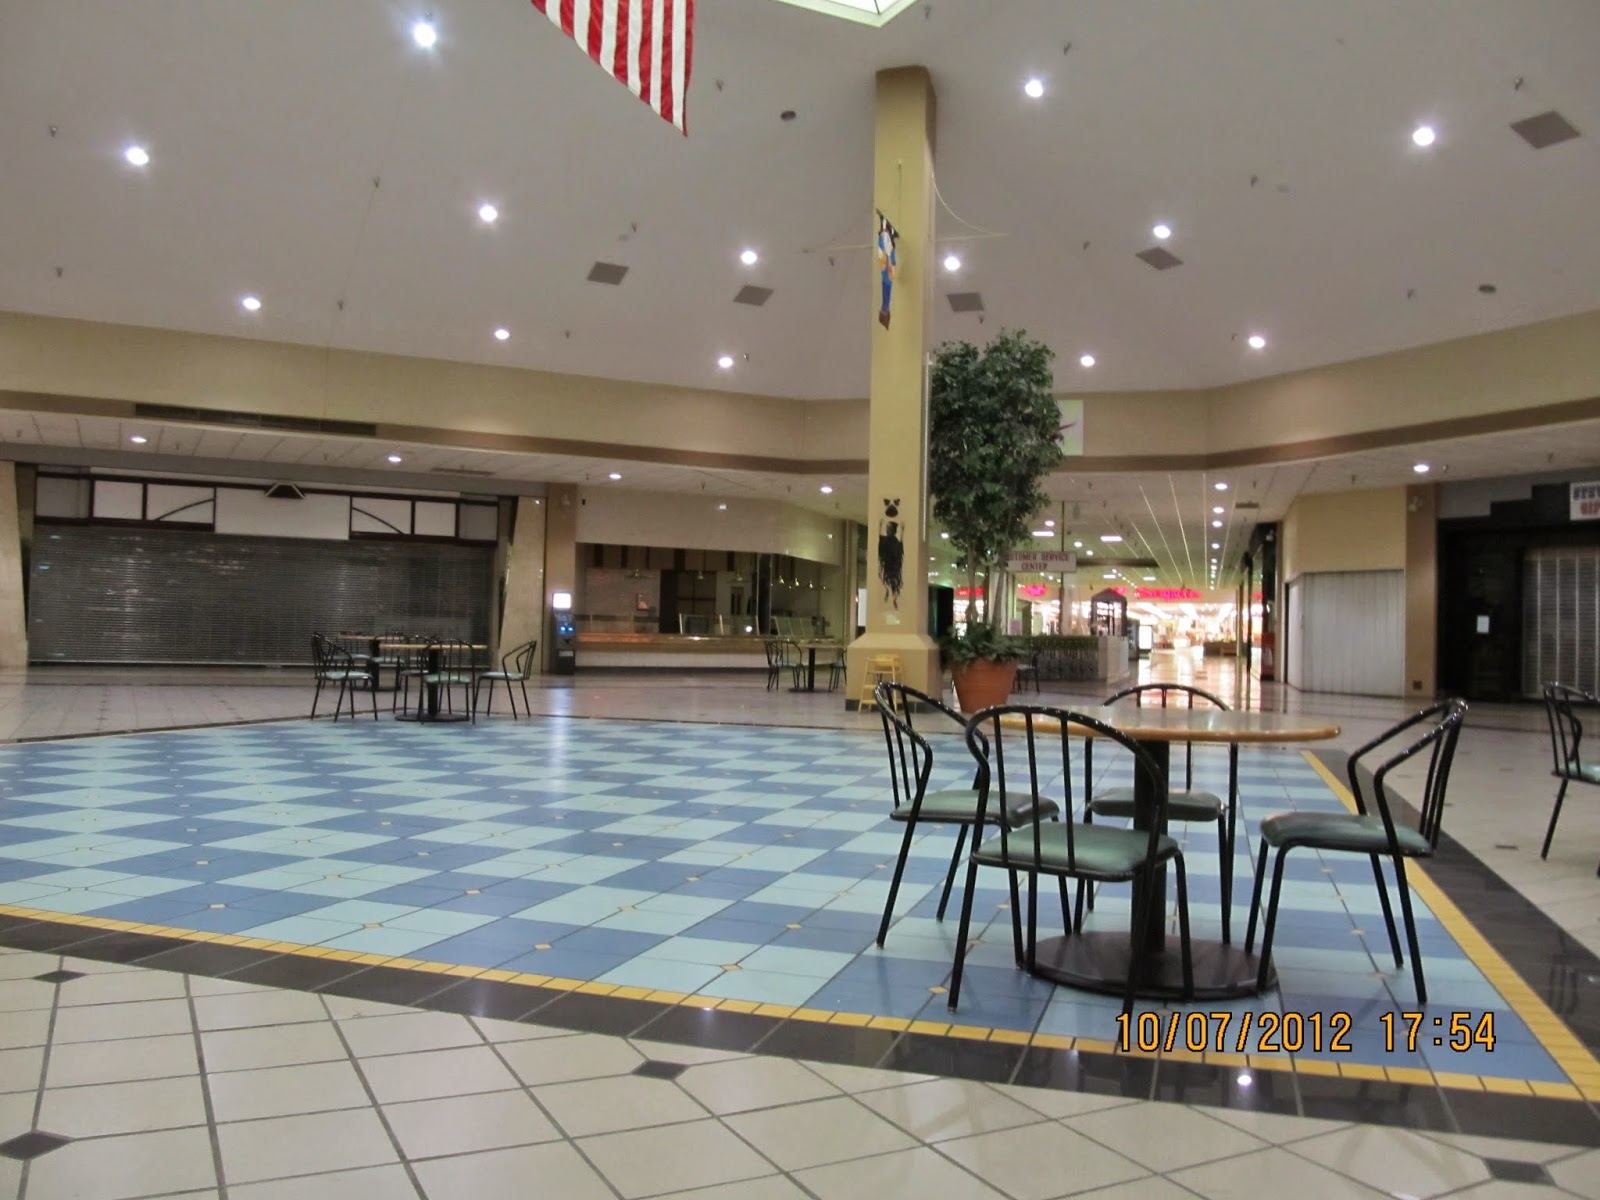 Trip to the Mall Sandburg Mall Galesburg ILThe